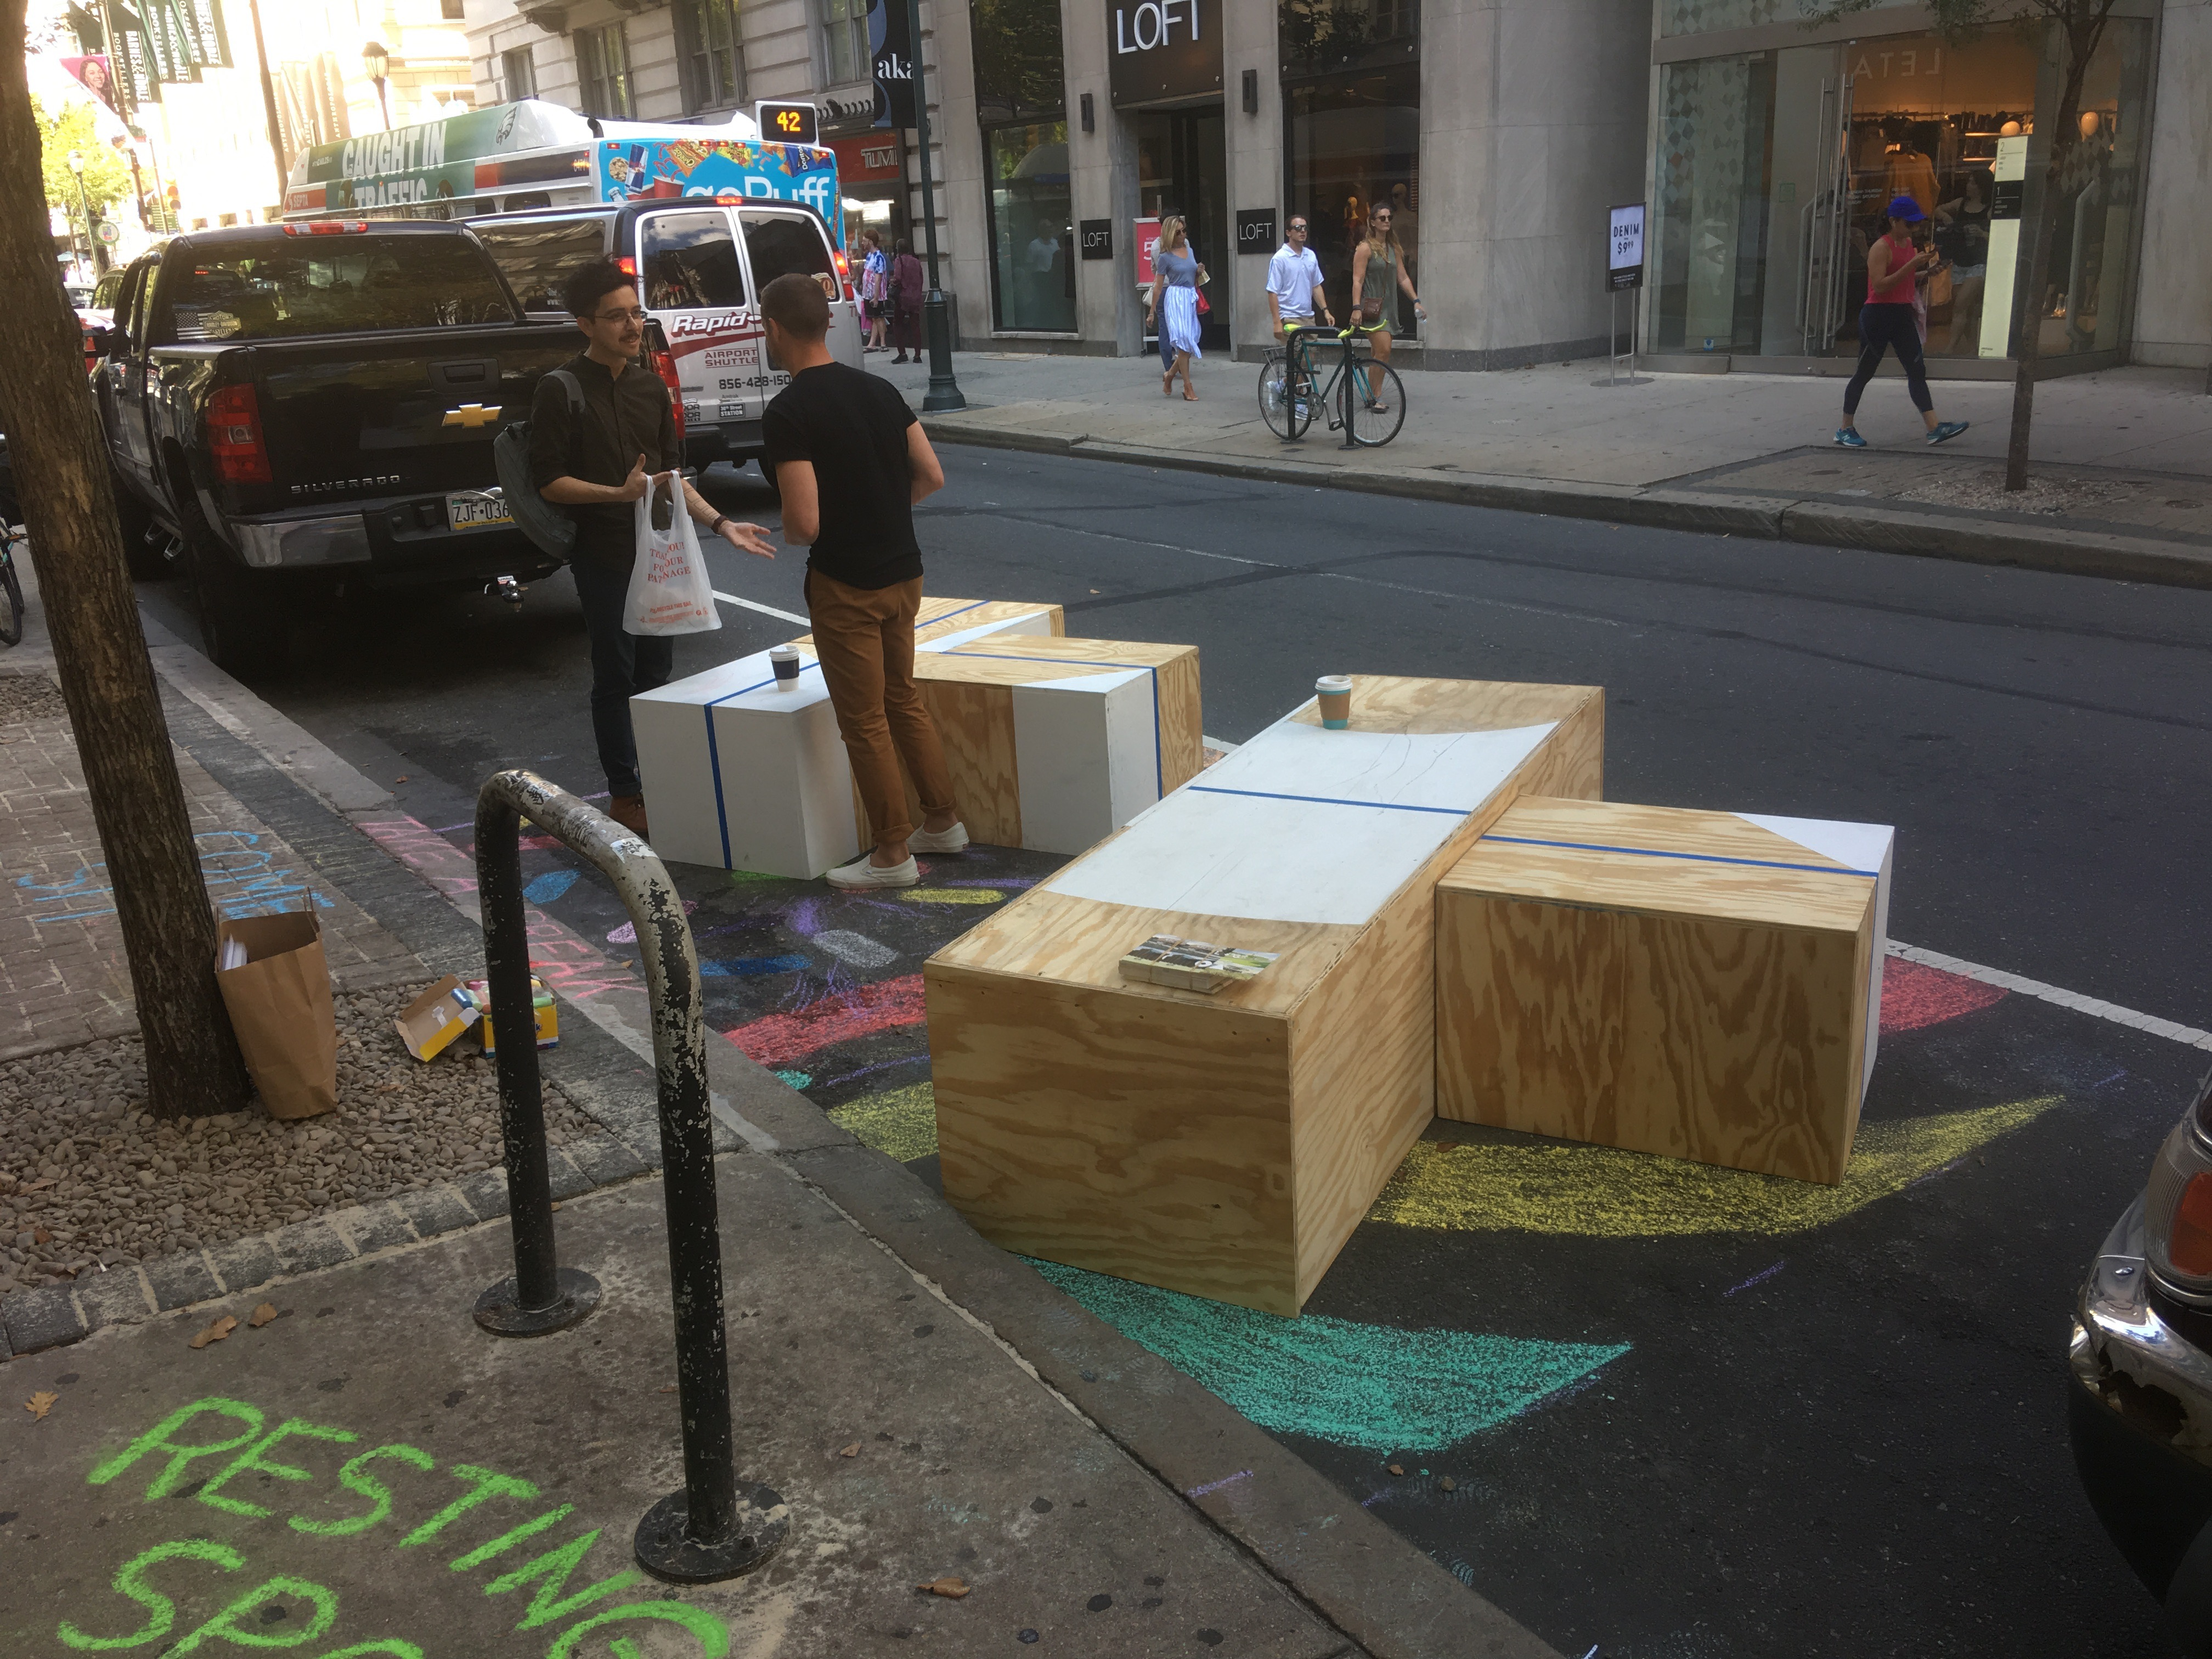 Lammey and Giorgio has recycled materials from their previous Park(ing) Day pop-ups the last few years in a row now